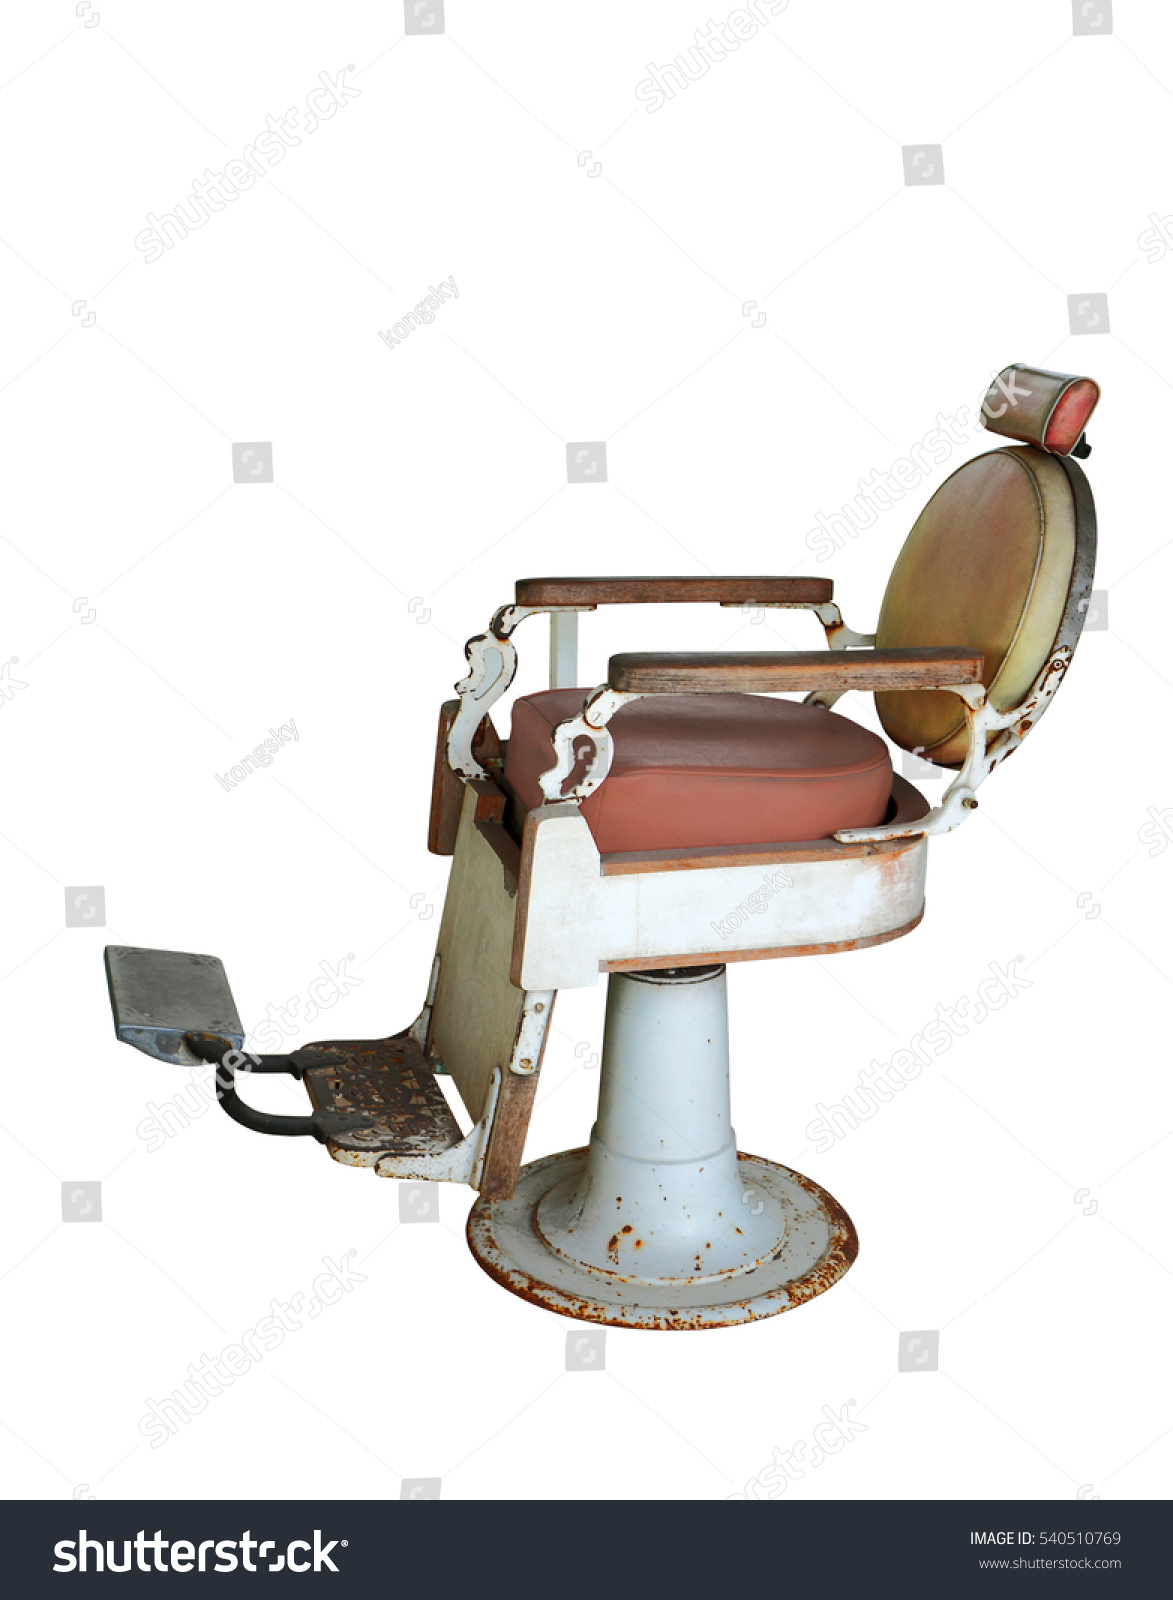 Hair salon chair isolated stock photos illustrations and vector art -  Vectors Illustrations Footage Music Old Barber Chair Isolated On White Background Clipping Path